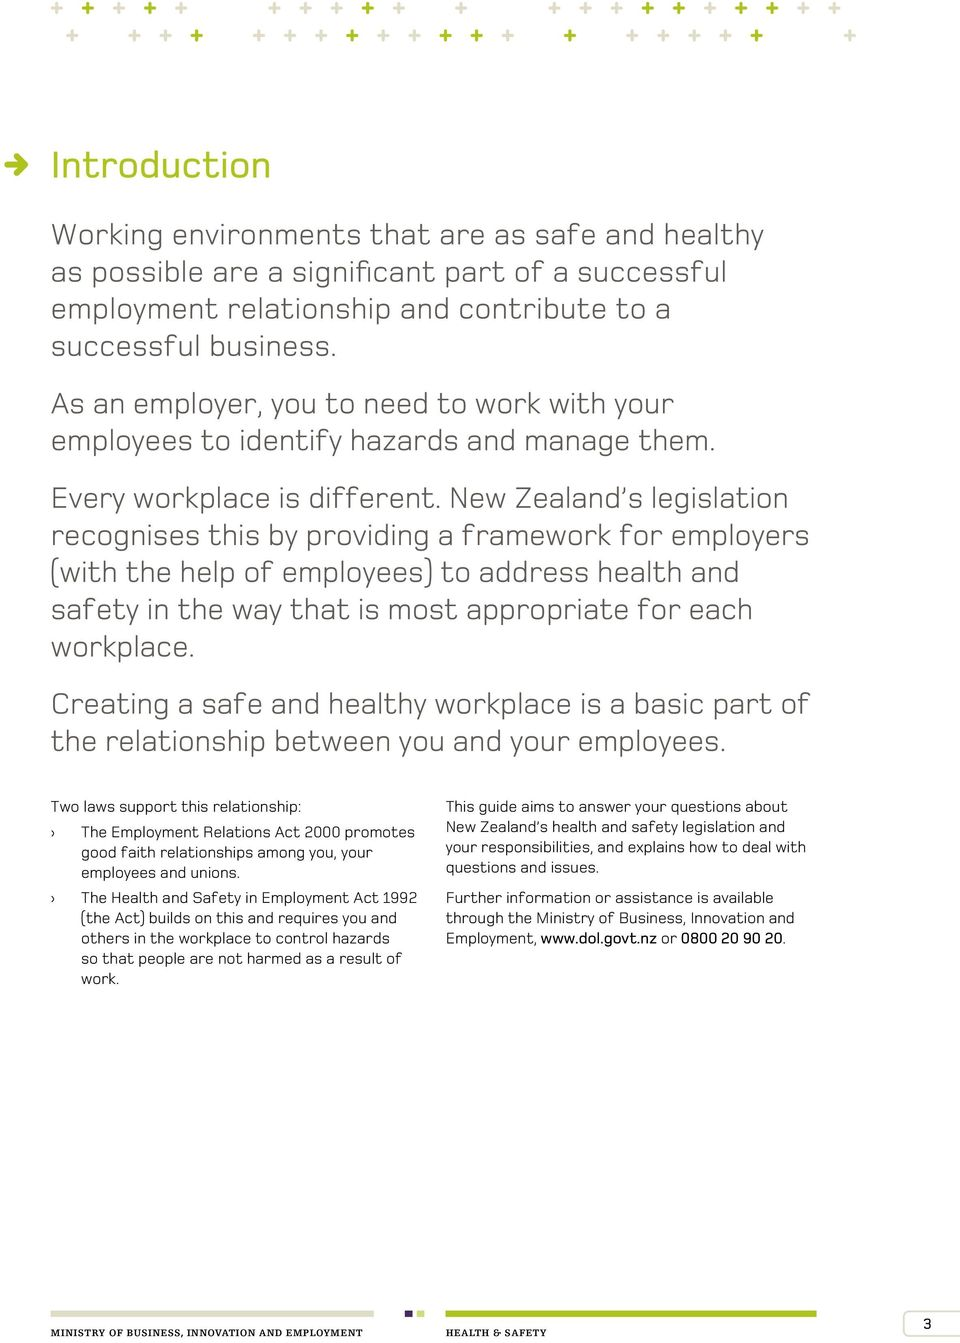 New Zealand s legislation recognises this by providing a framework for employers (with the help of employees) to address health and safety in the way that is most appropriate for each workplace.